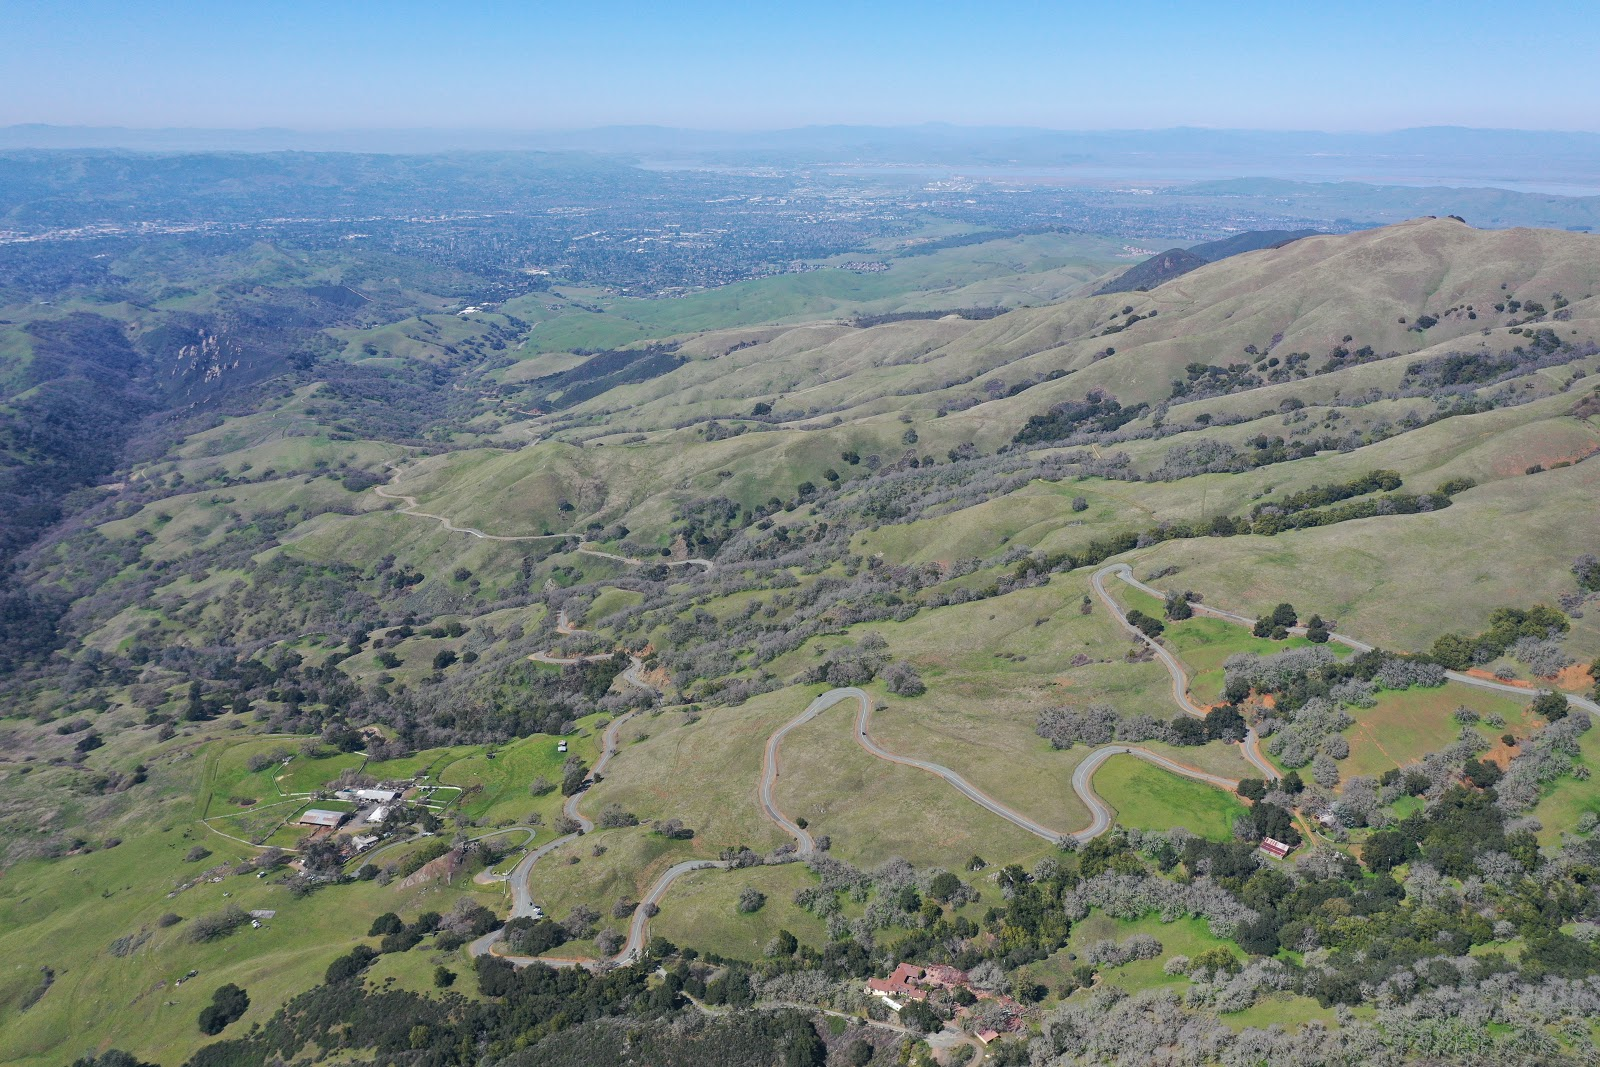 Cycling Mt. Diablo - North Gate - aerial drone photo of hairpin turns